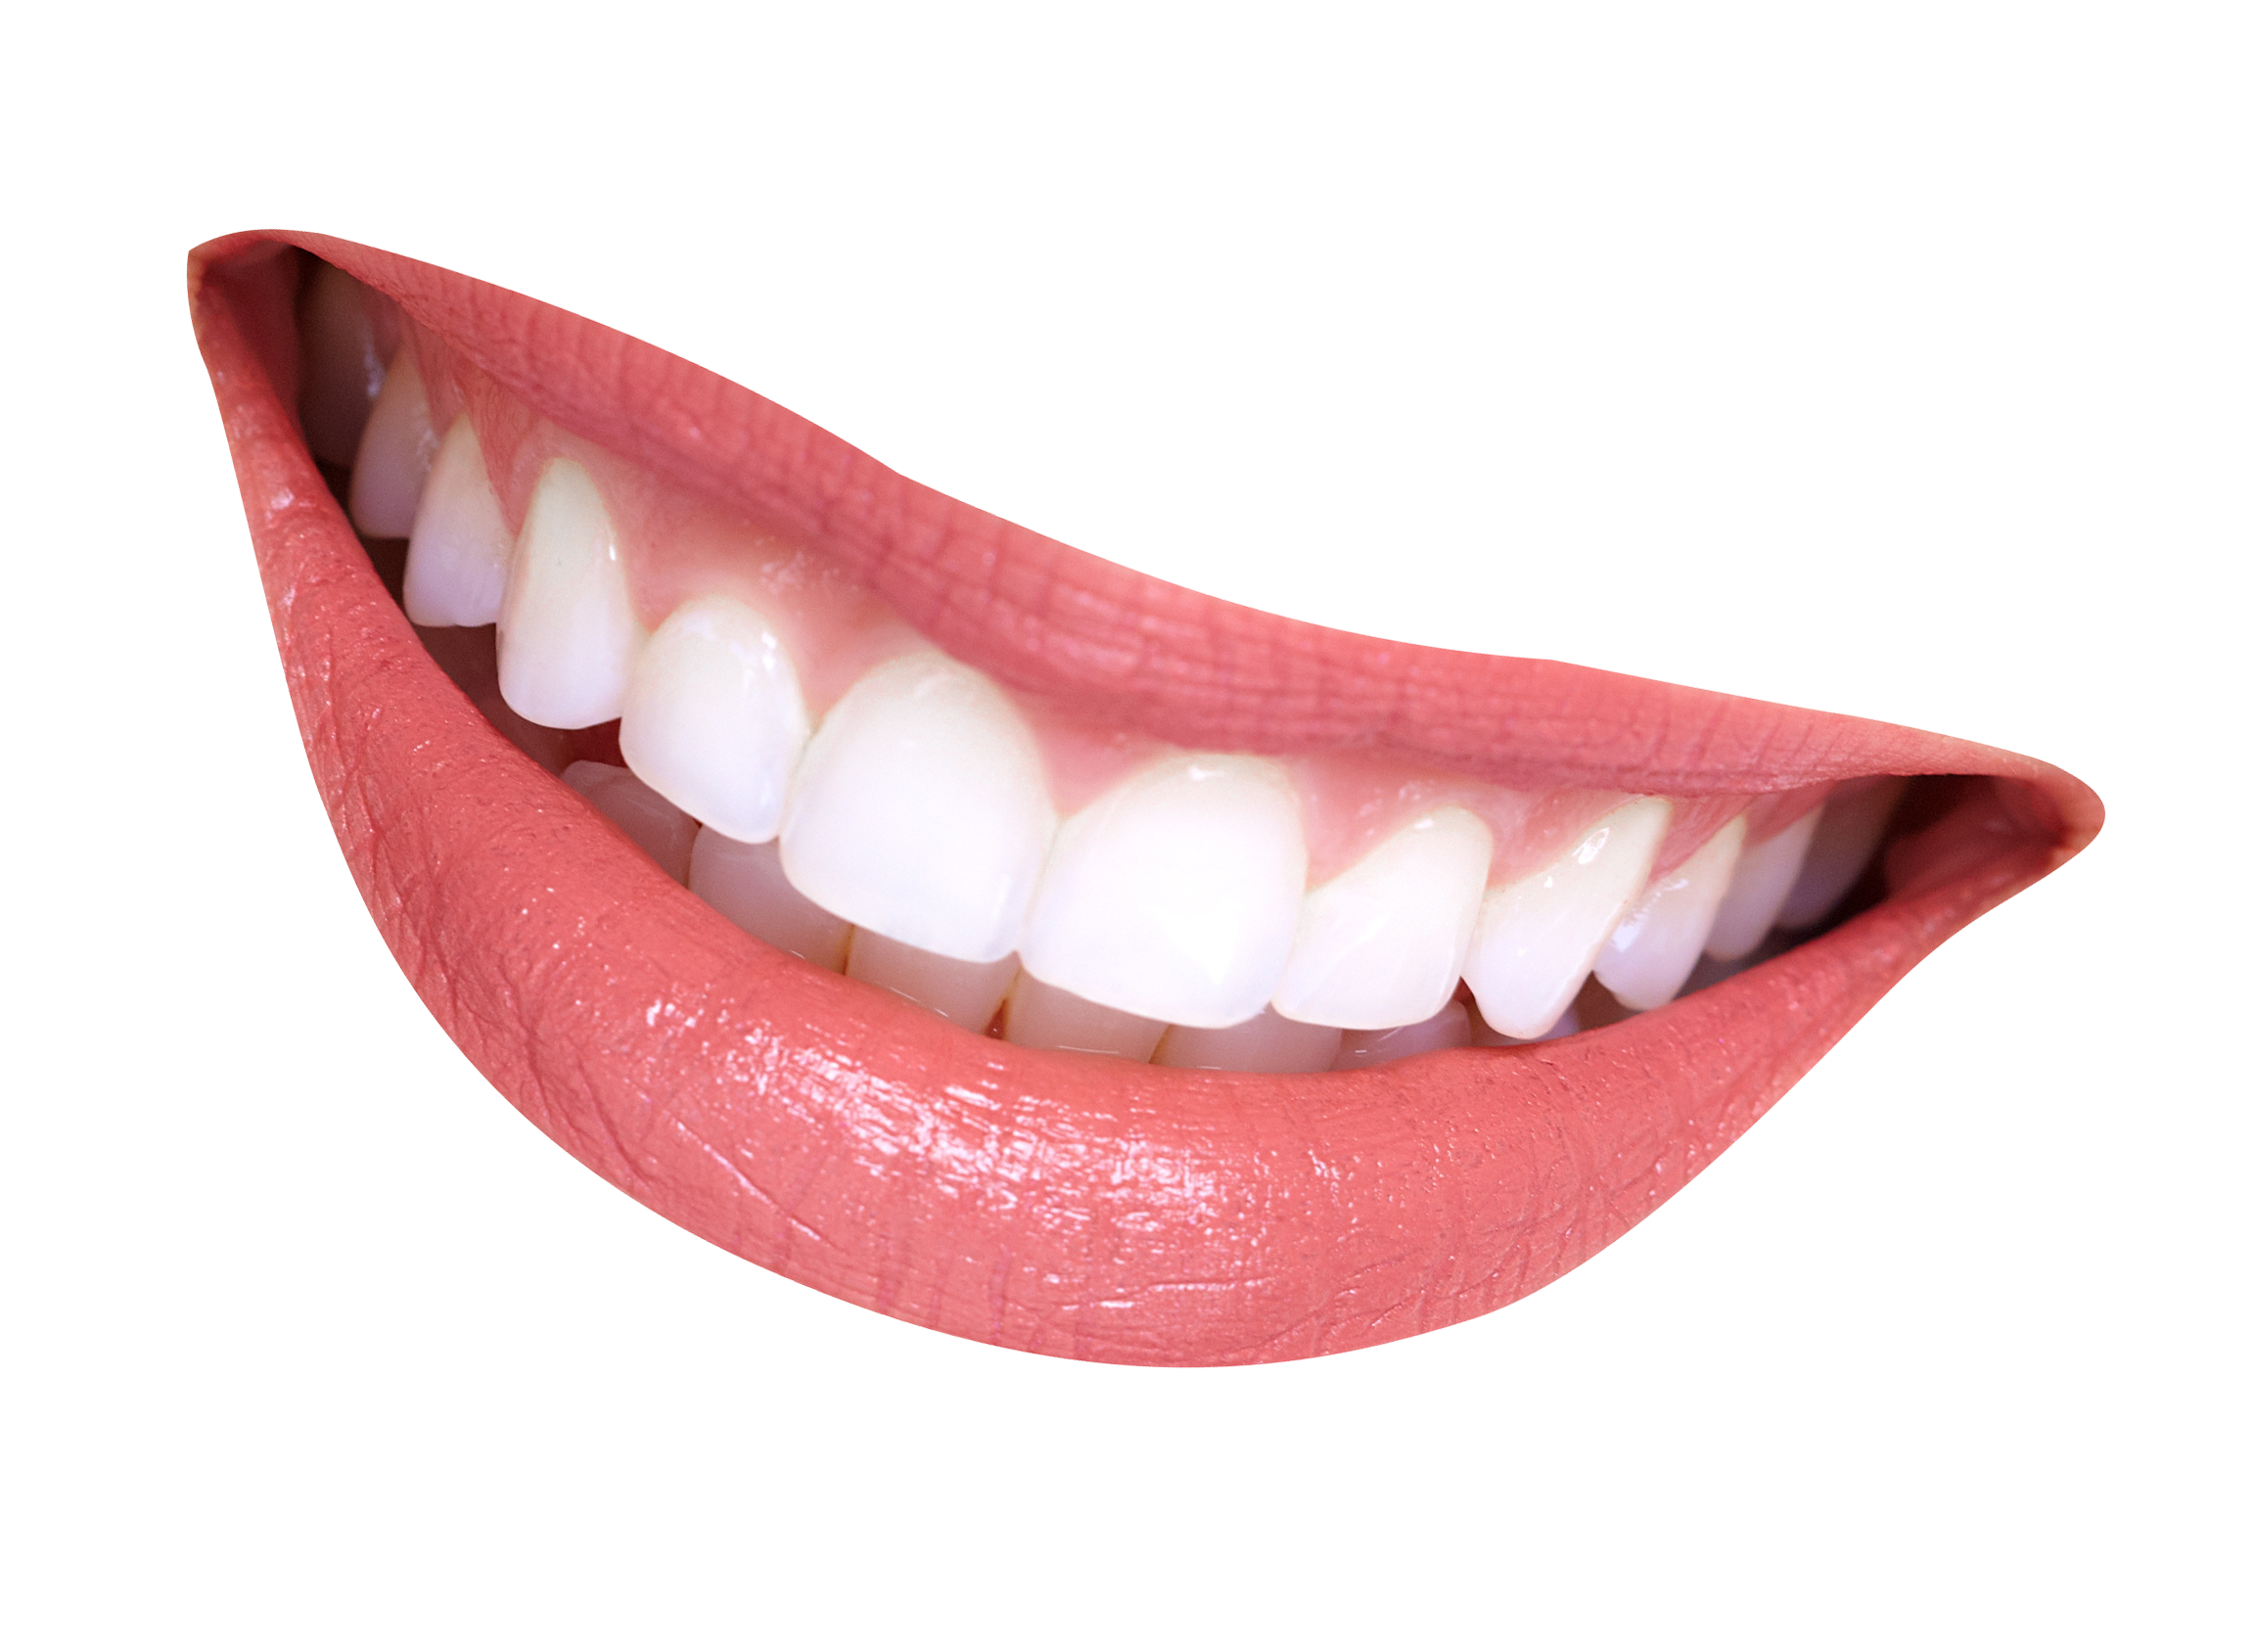 Smile Mouth PNG Free Download #46509.